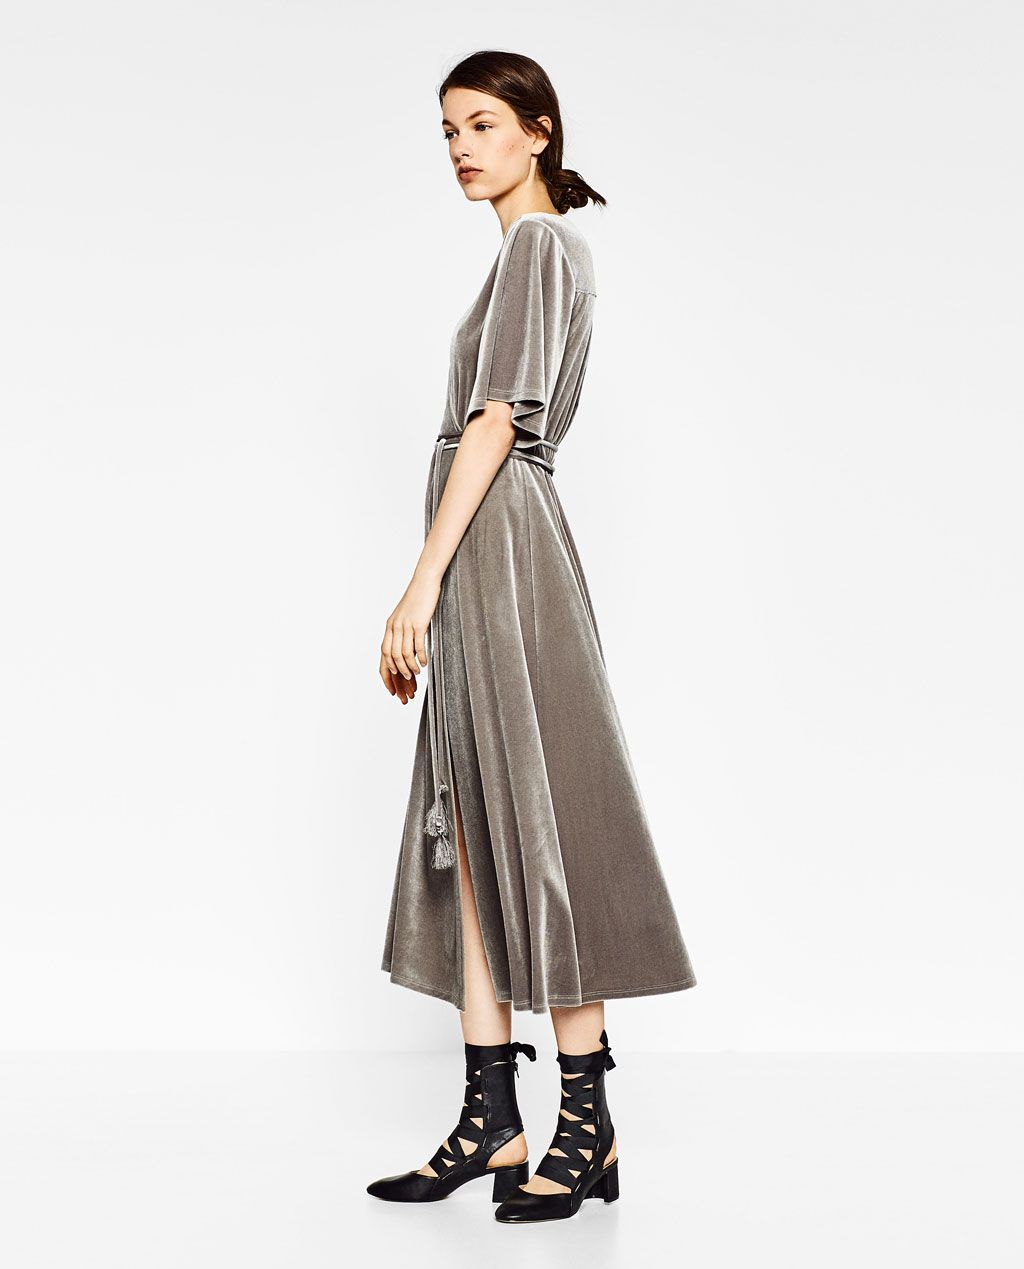 Zara dresses for wedding guests fall 2018